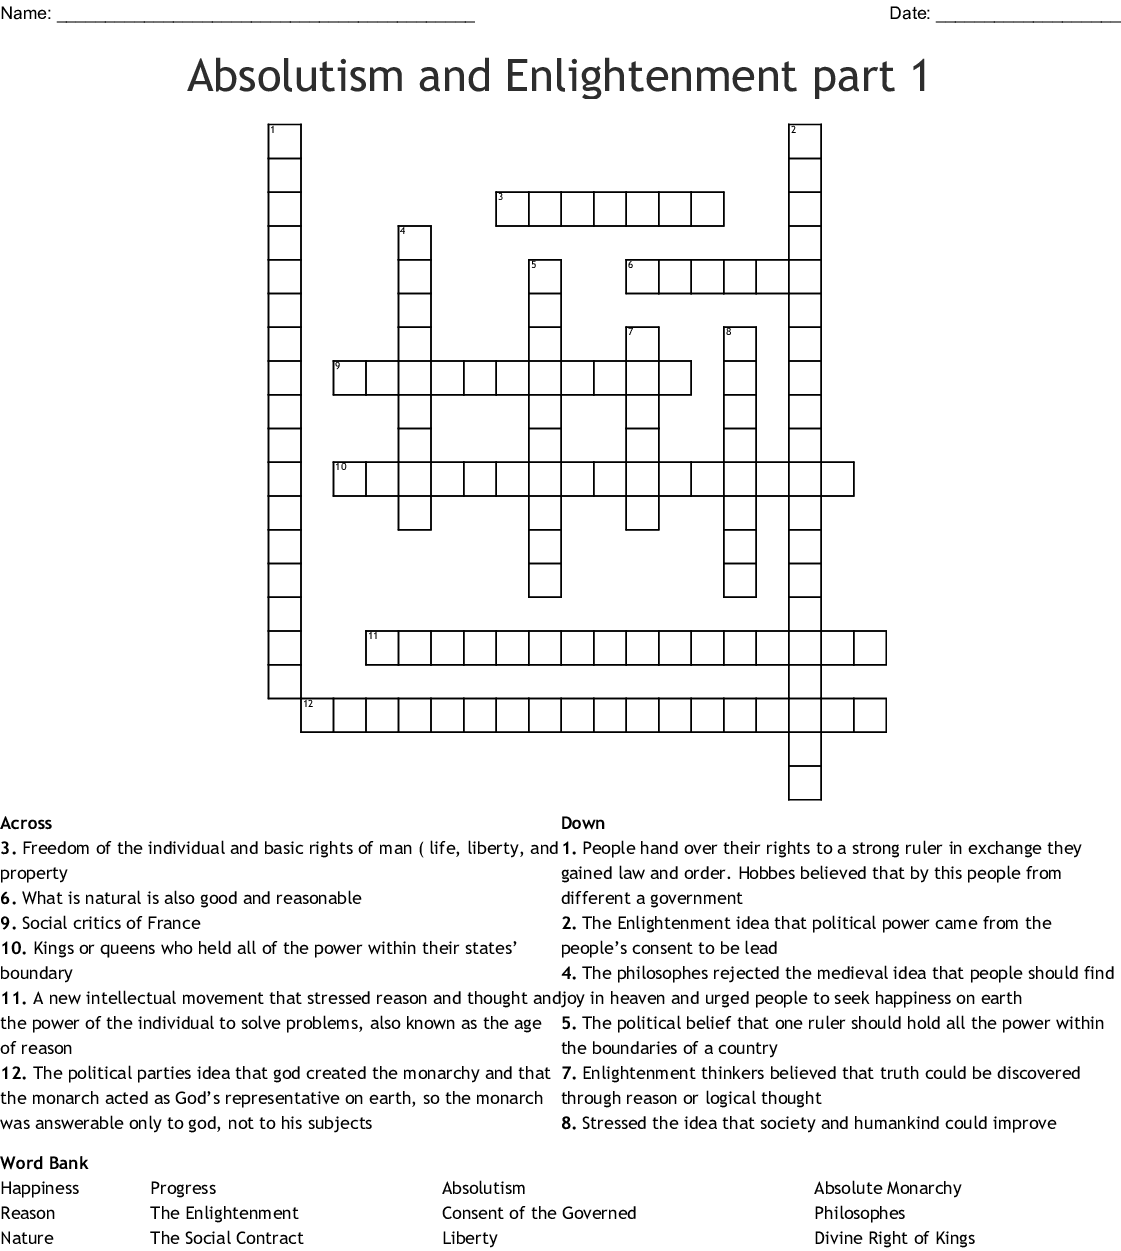 Absolutism And Enlightenment Part 1 Crossword Wordmint